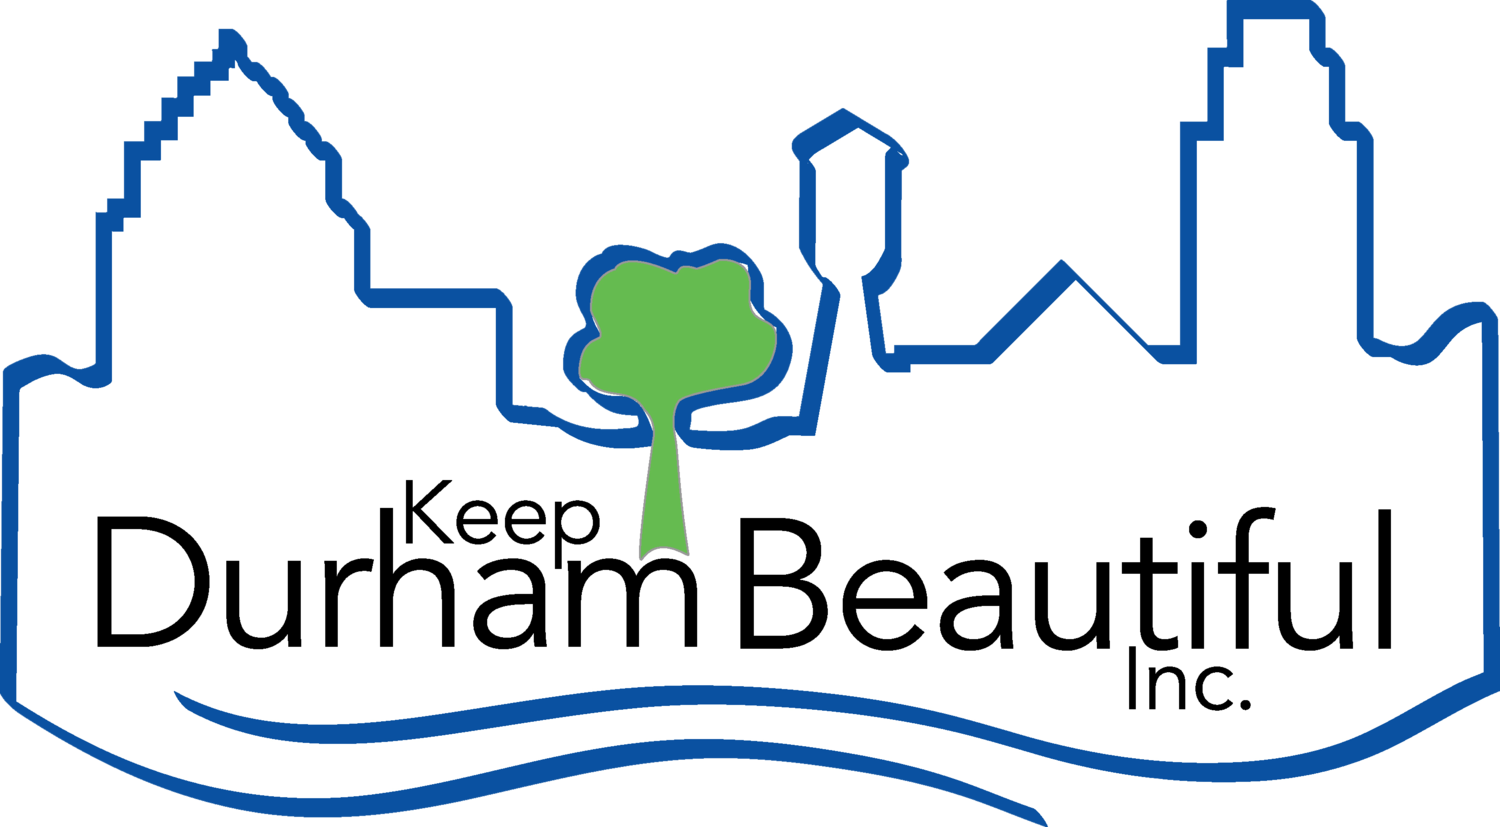 Keep Durham Beautiful